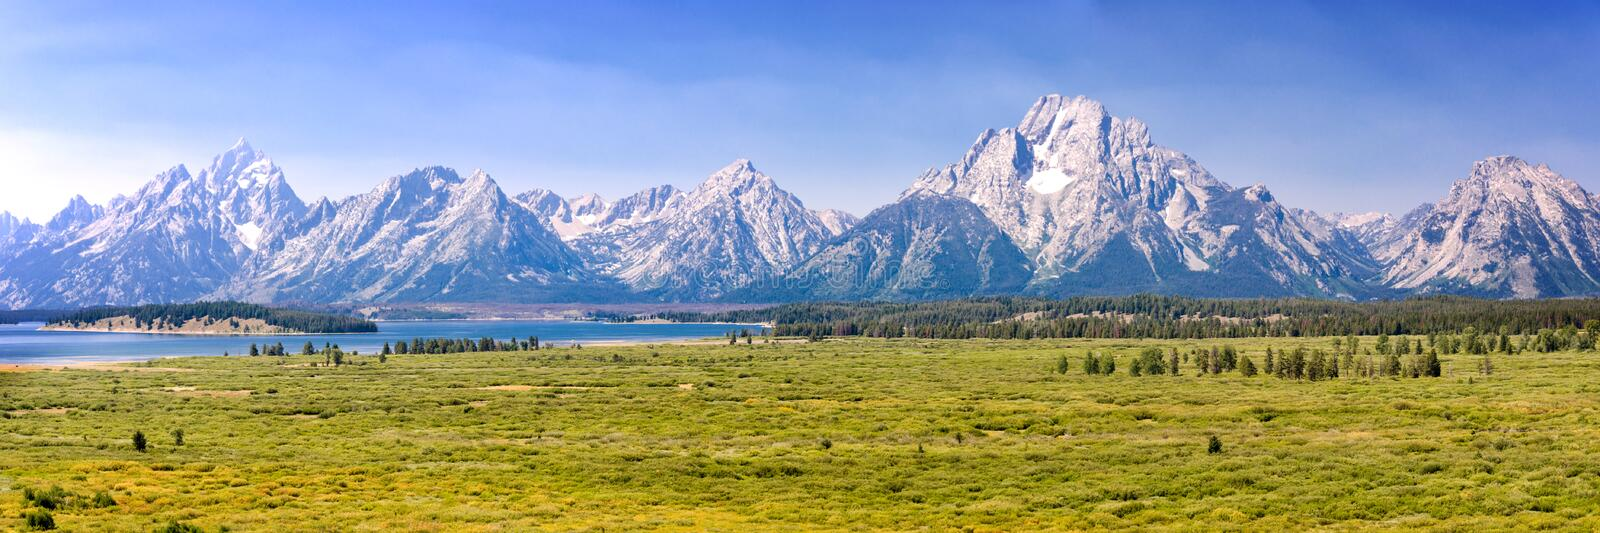 Grand Teton national park, mountain range panorama, Wyoming USA royalty free stock images